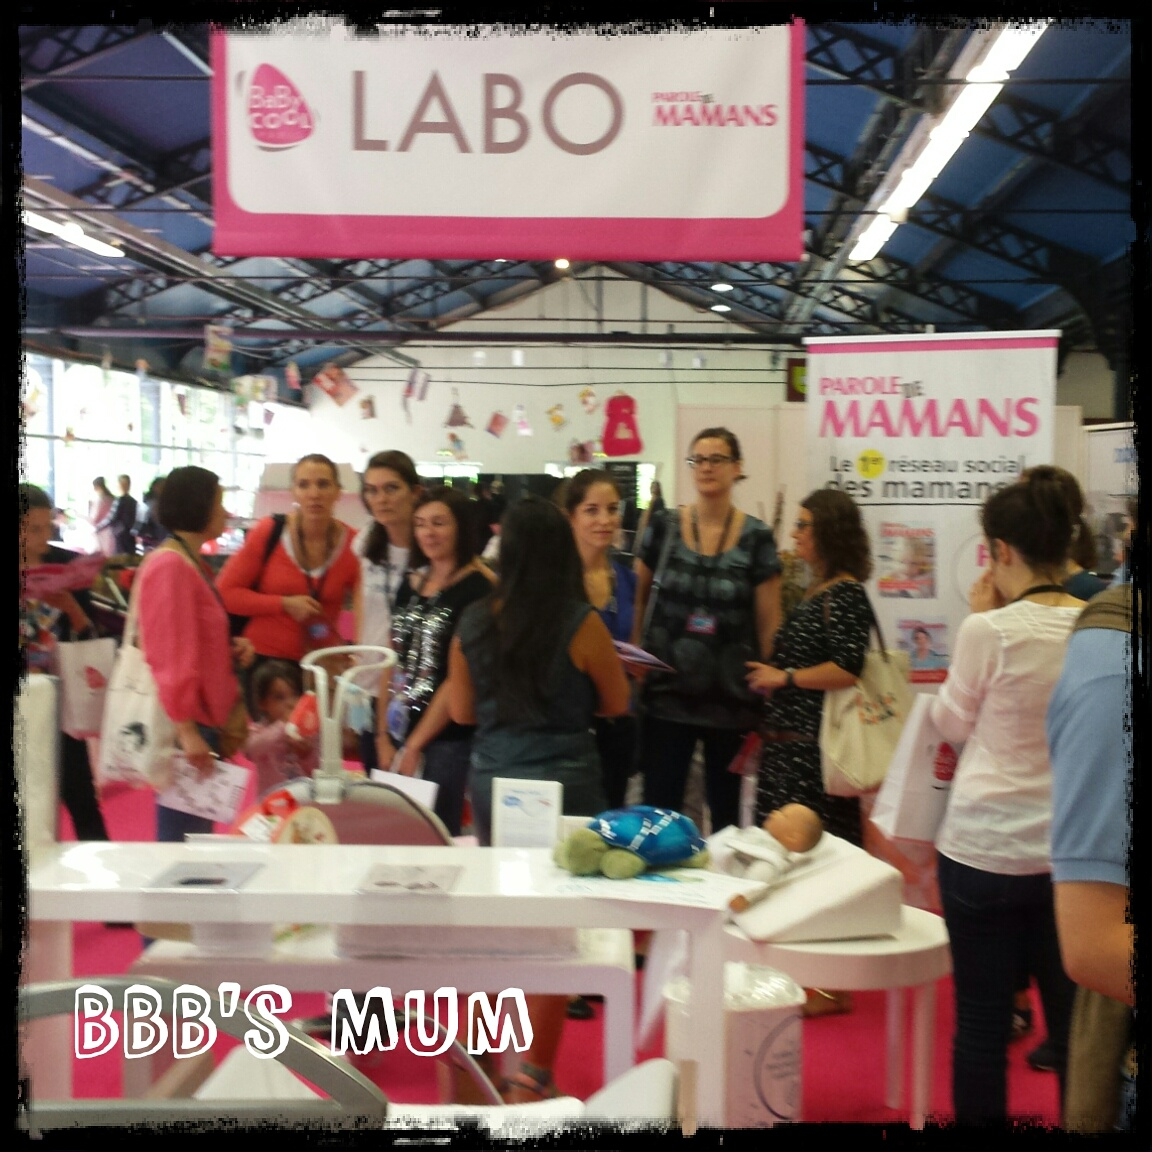 Le Salon Du Bébé Salon Baby Cool 2014 Bbb S Mum